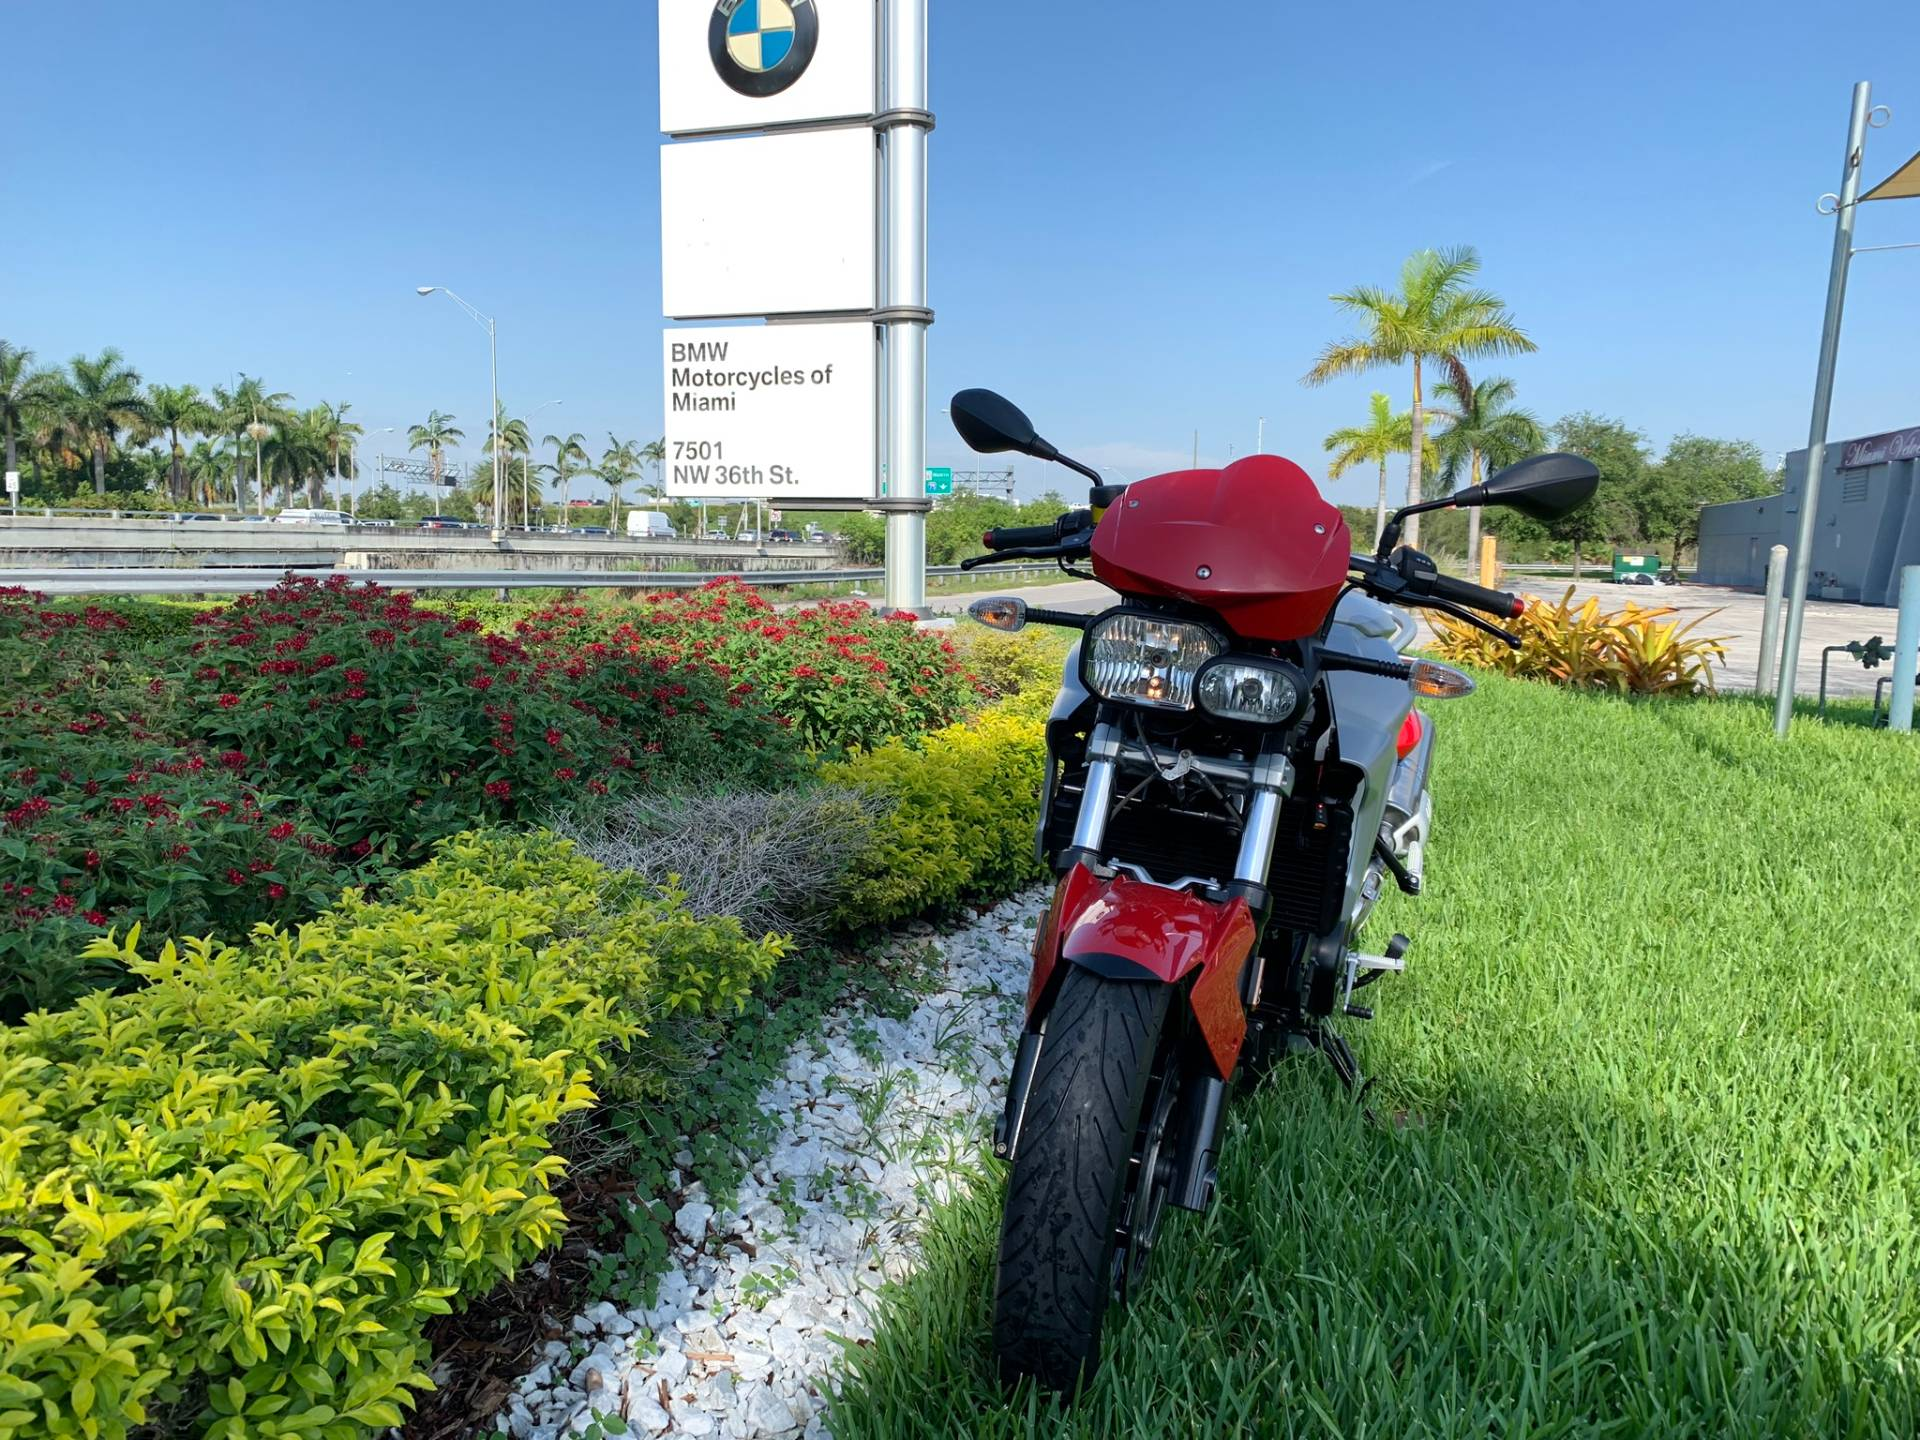 Used 2012 BMW F 800 R for sale, BMW F 800R for sale, BMW Motorcycle F800R, used BMW Roaster, Naked, 800, BMW. BMW Motorcycles of Miami, Motorcycles of Miami, Motorcycles Miami, New Motorcycles, Used Motorcycles, pre-owned. #BMWMotorcyclesOfMiami #MotorcyclesOfMiami. - Photo 2